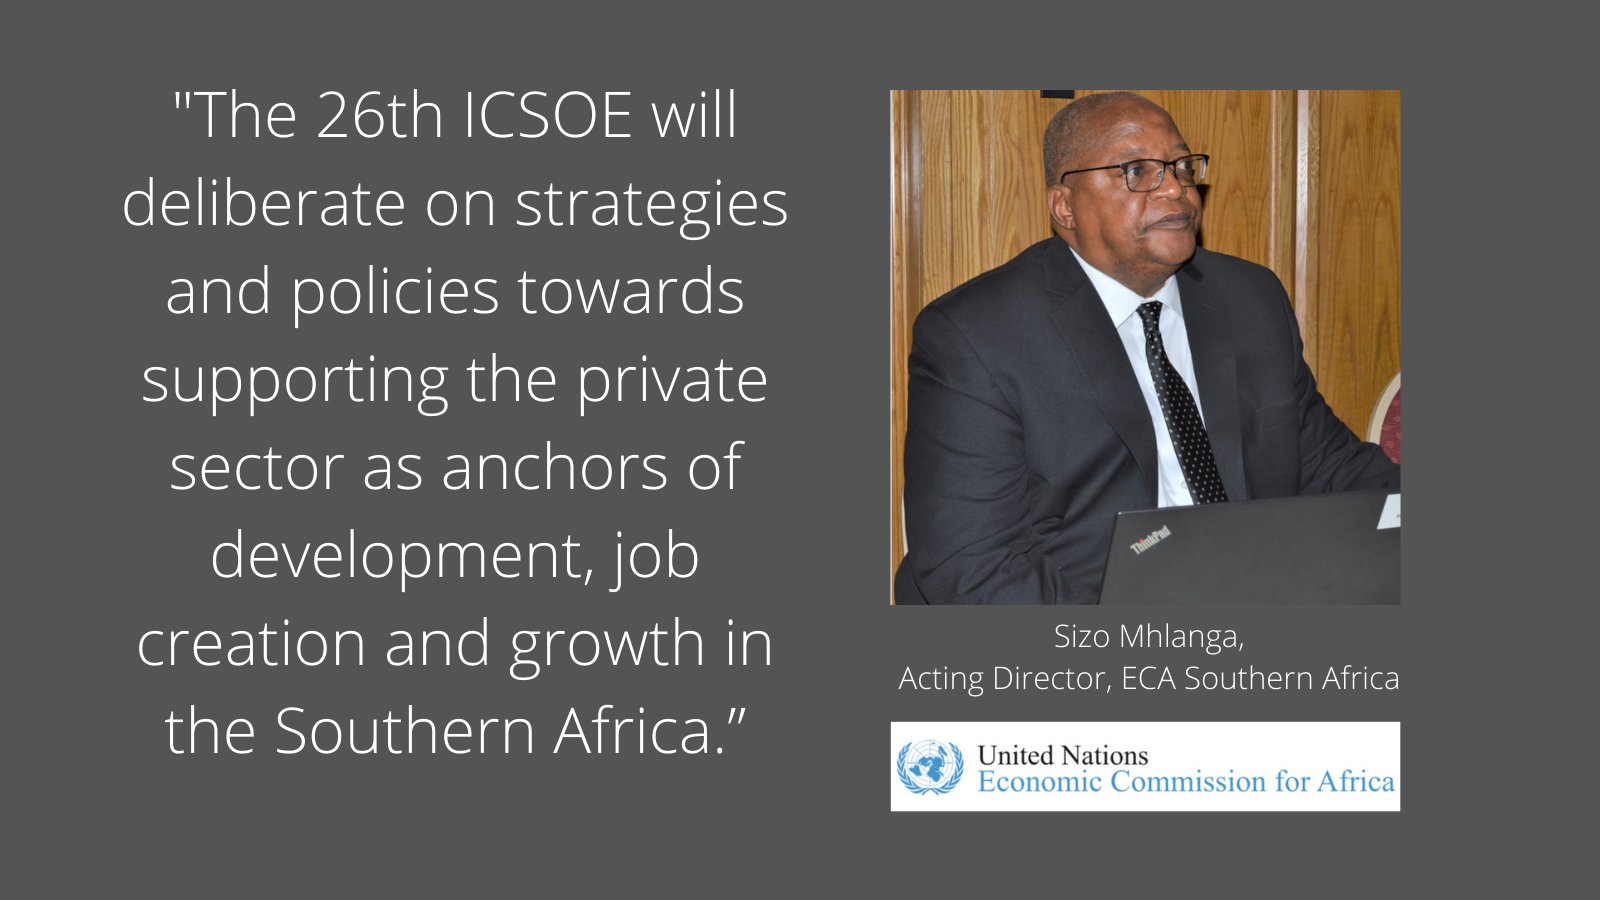 The 26th ICSOE Meeting of Southern Africa Elects a New Bureau